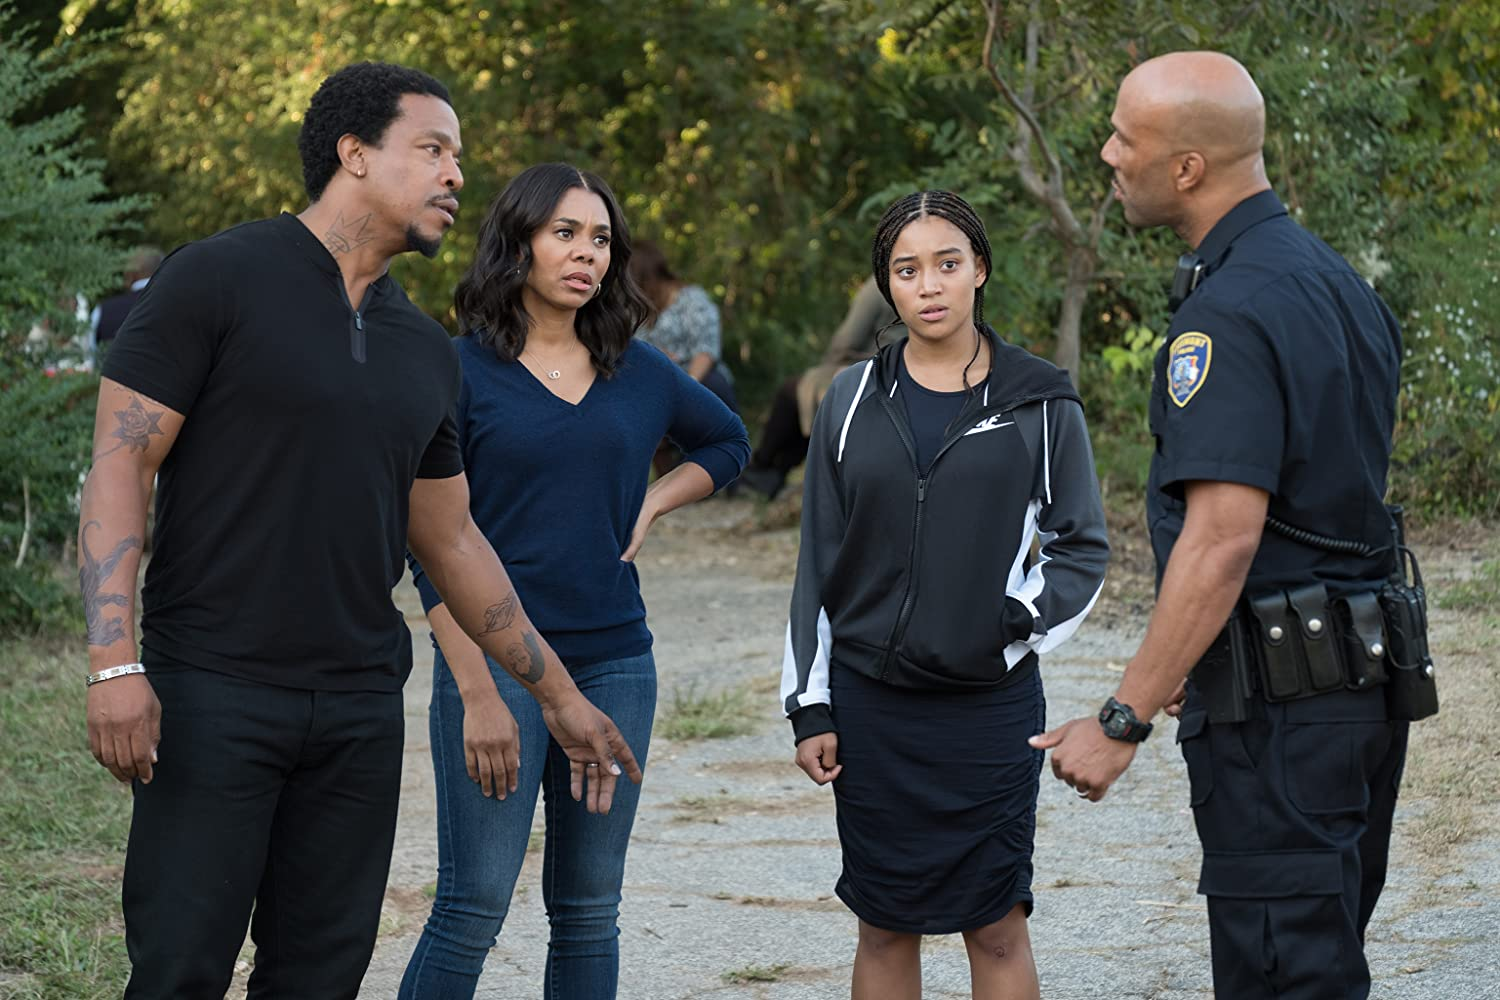 Regina Hall, Russell Hornsby, Common, and Amandla Stenberg in The Hate U Give (2018)